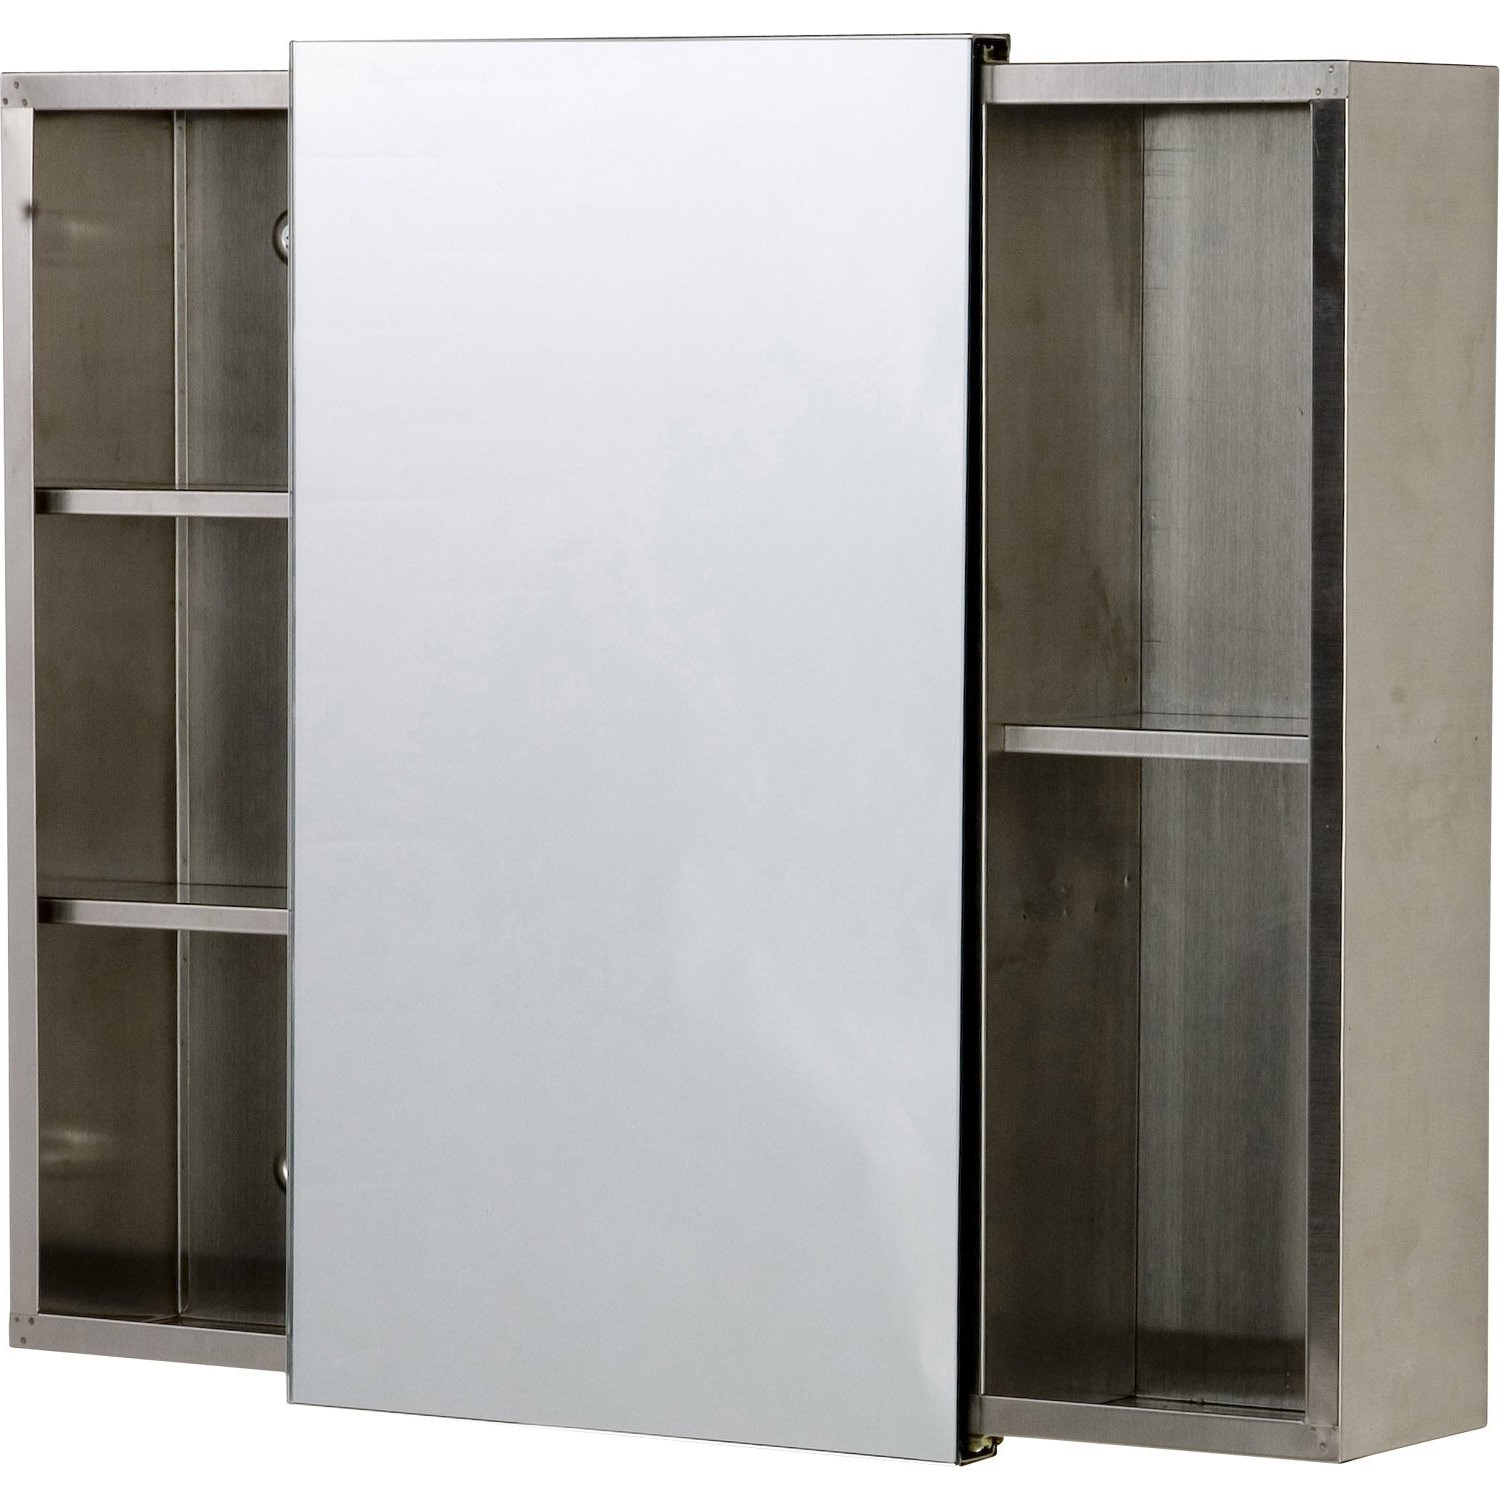 Stunning armoire de toilette leroy merlin ideas for Armoire de toilette but